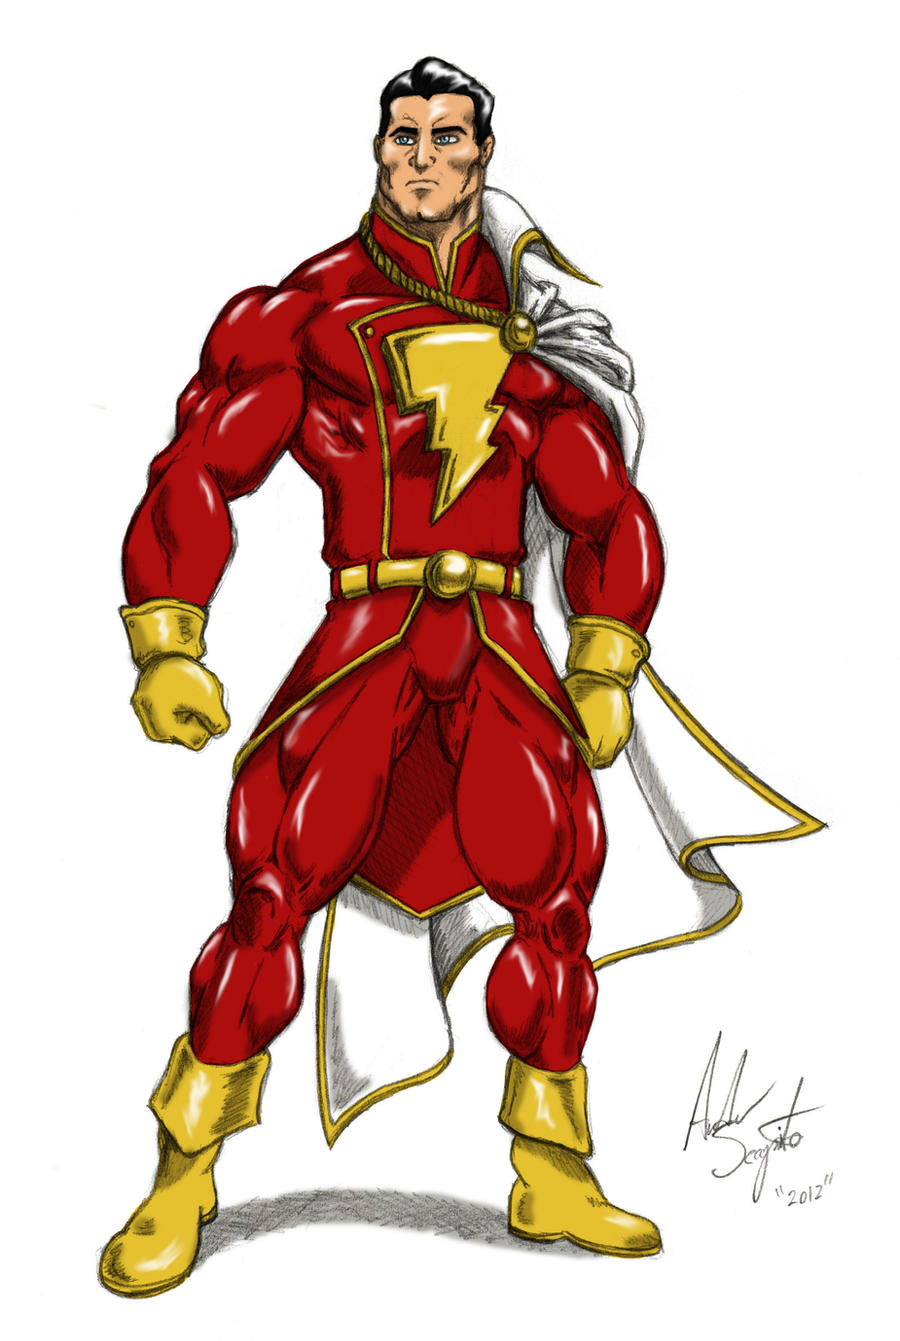 This Is A Much Better Look For Shazam